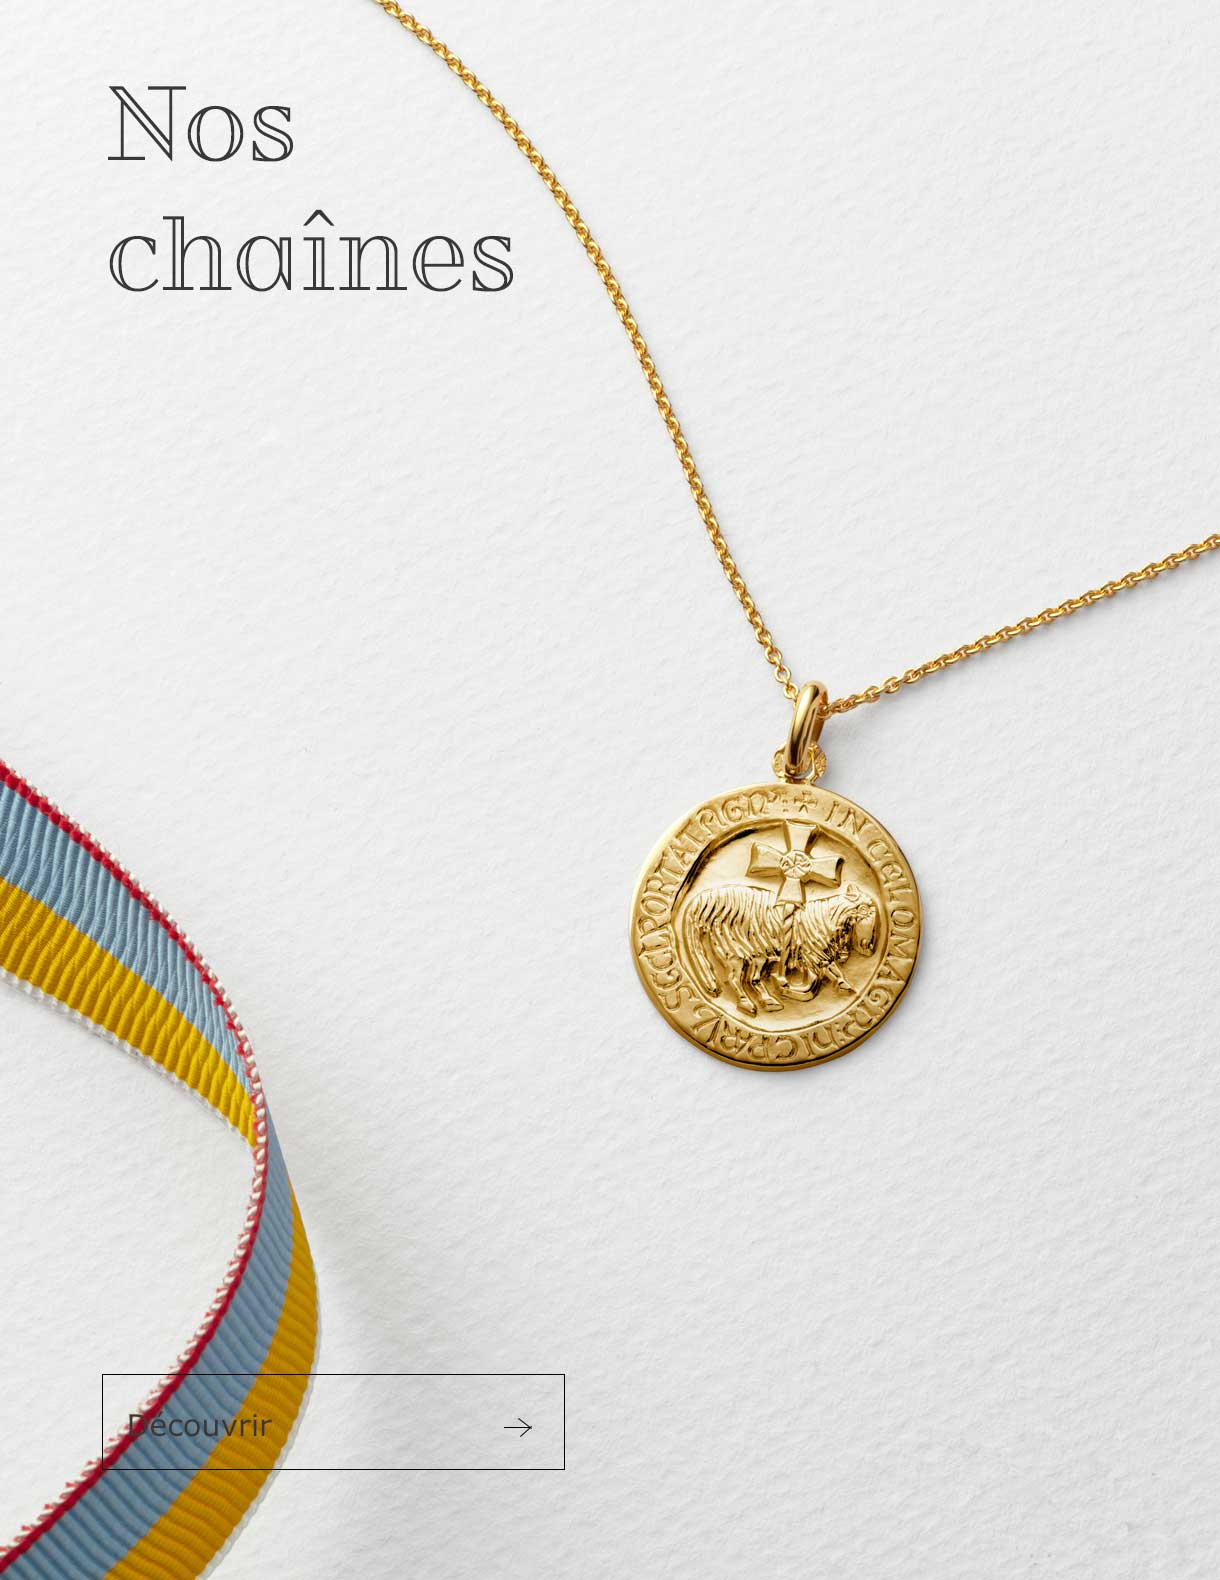 Nos chaines